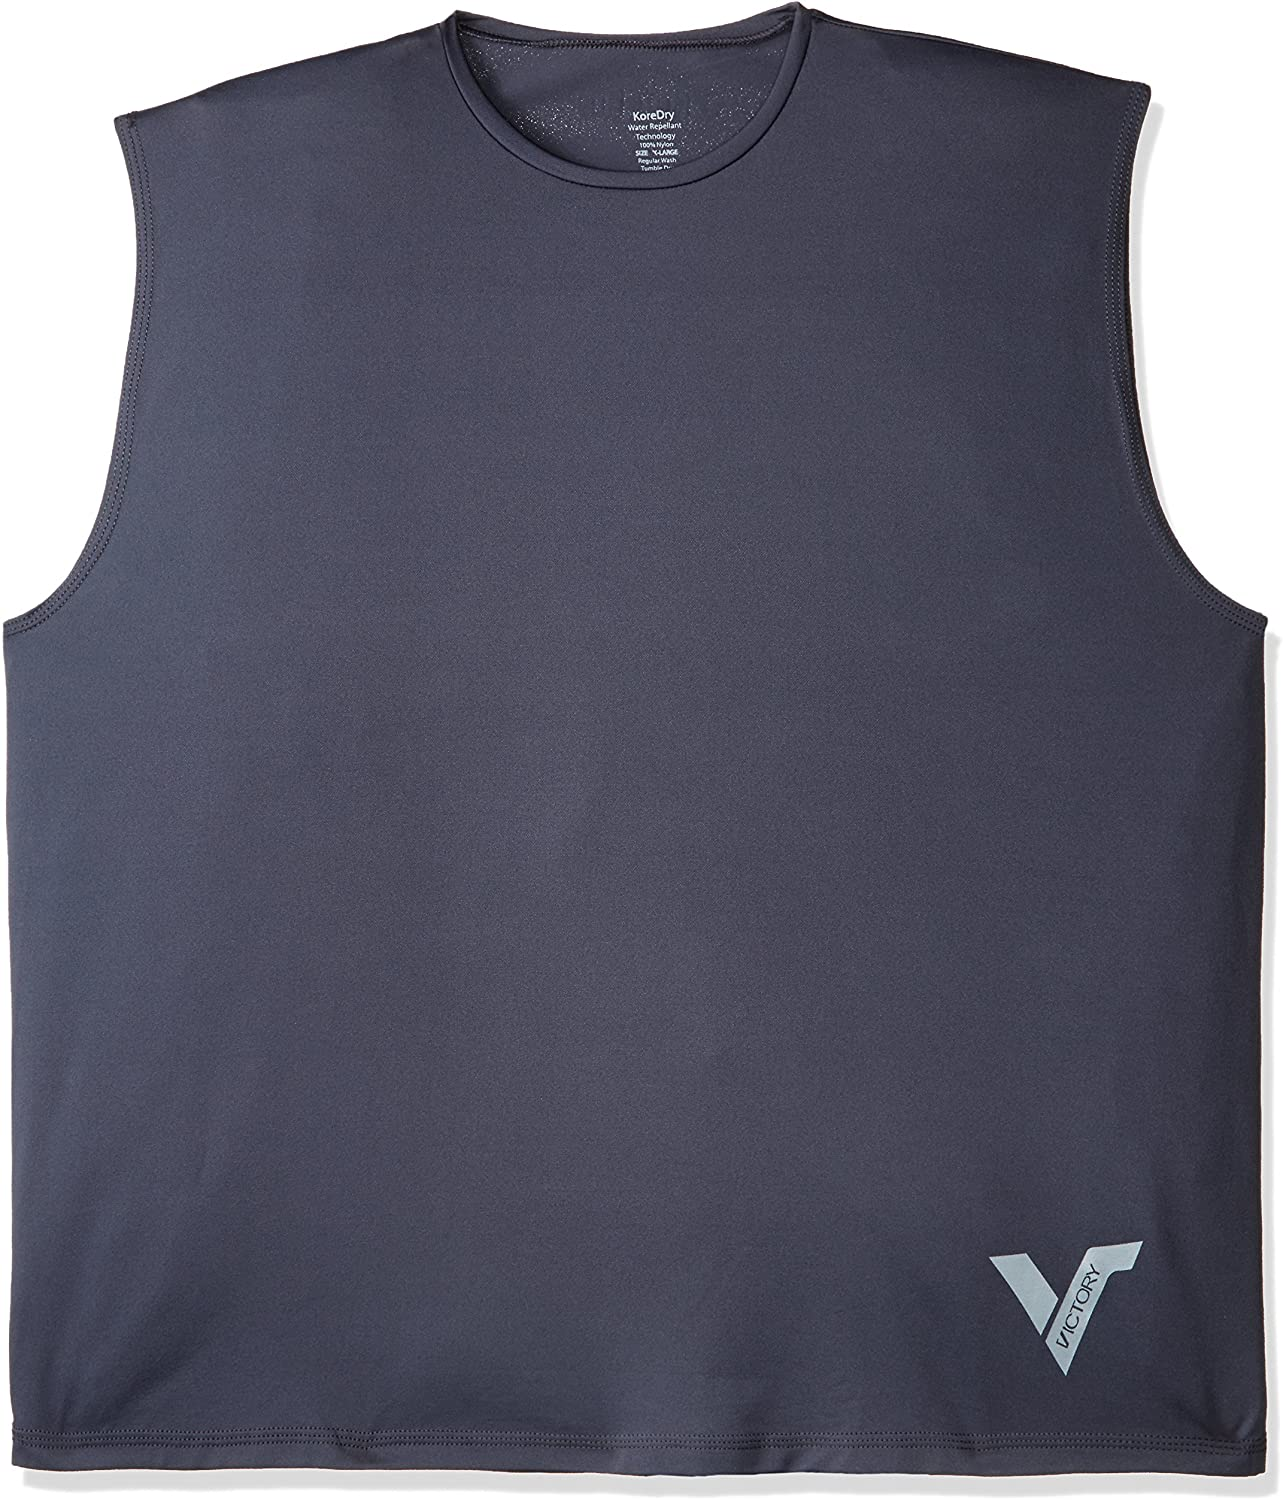 Victory KoreDry Relaxed Fit Sleeveless T-Shirt